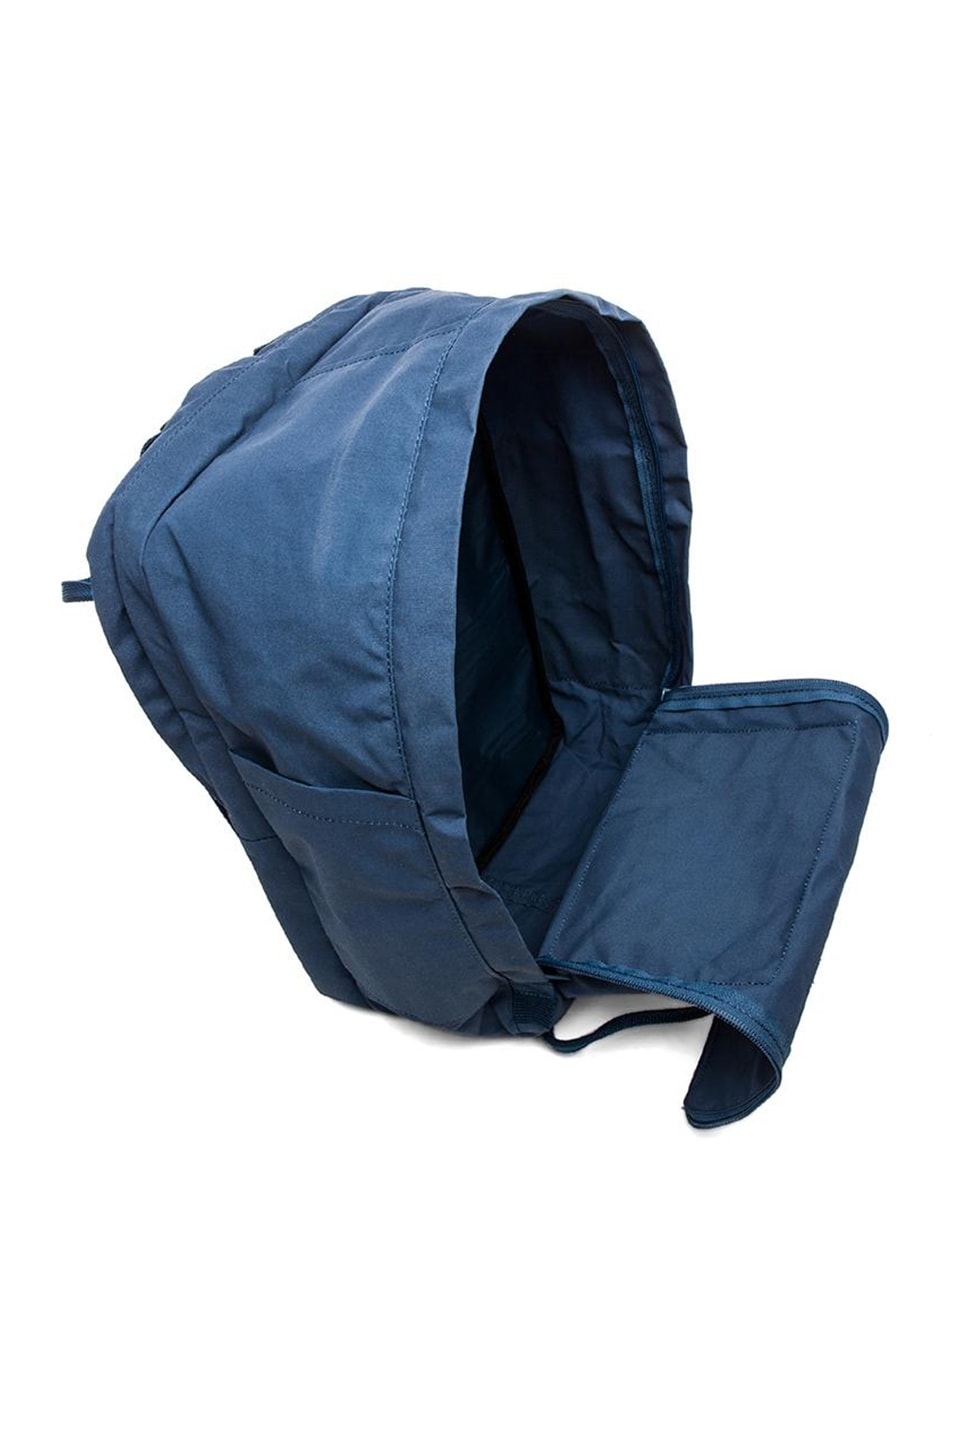 "Fjallraven Kanken 15"" Laptop Pack in Royal Blue"